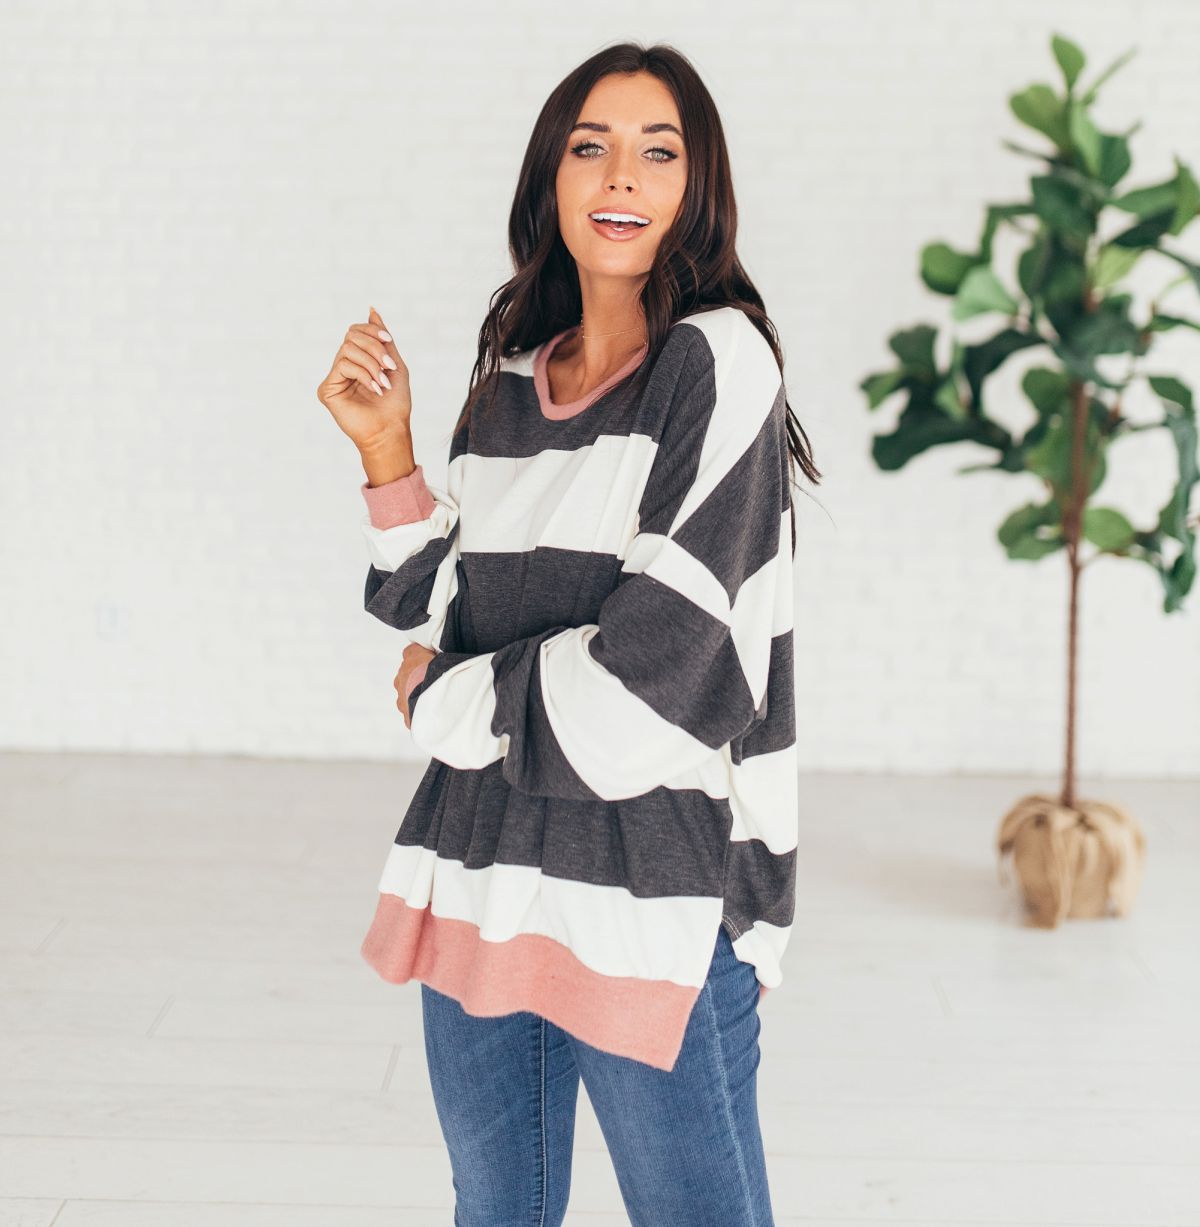 e628eae7bb7 ad Flattering loose fit on this broad striped sweatshirt. 3 colors and only   25.99. .  sixsistersstyle  sweatshirt  instafashion  igstyle  ootd   ootdshare